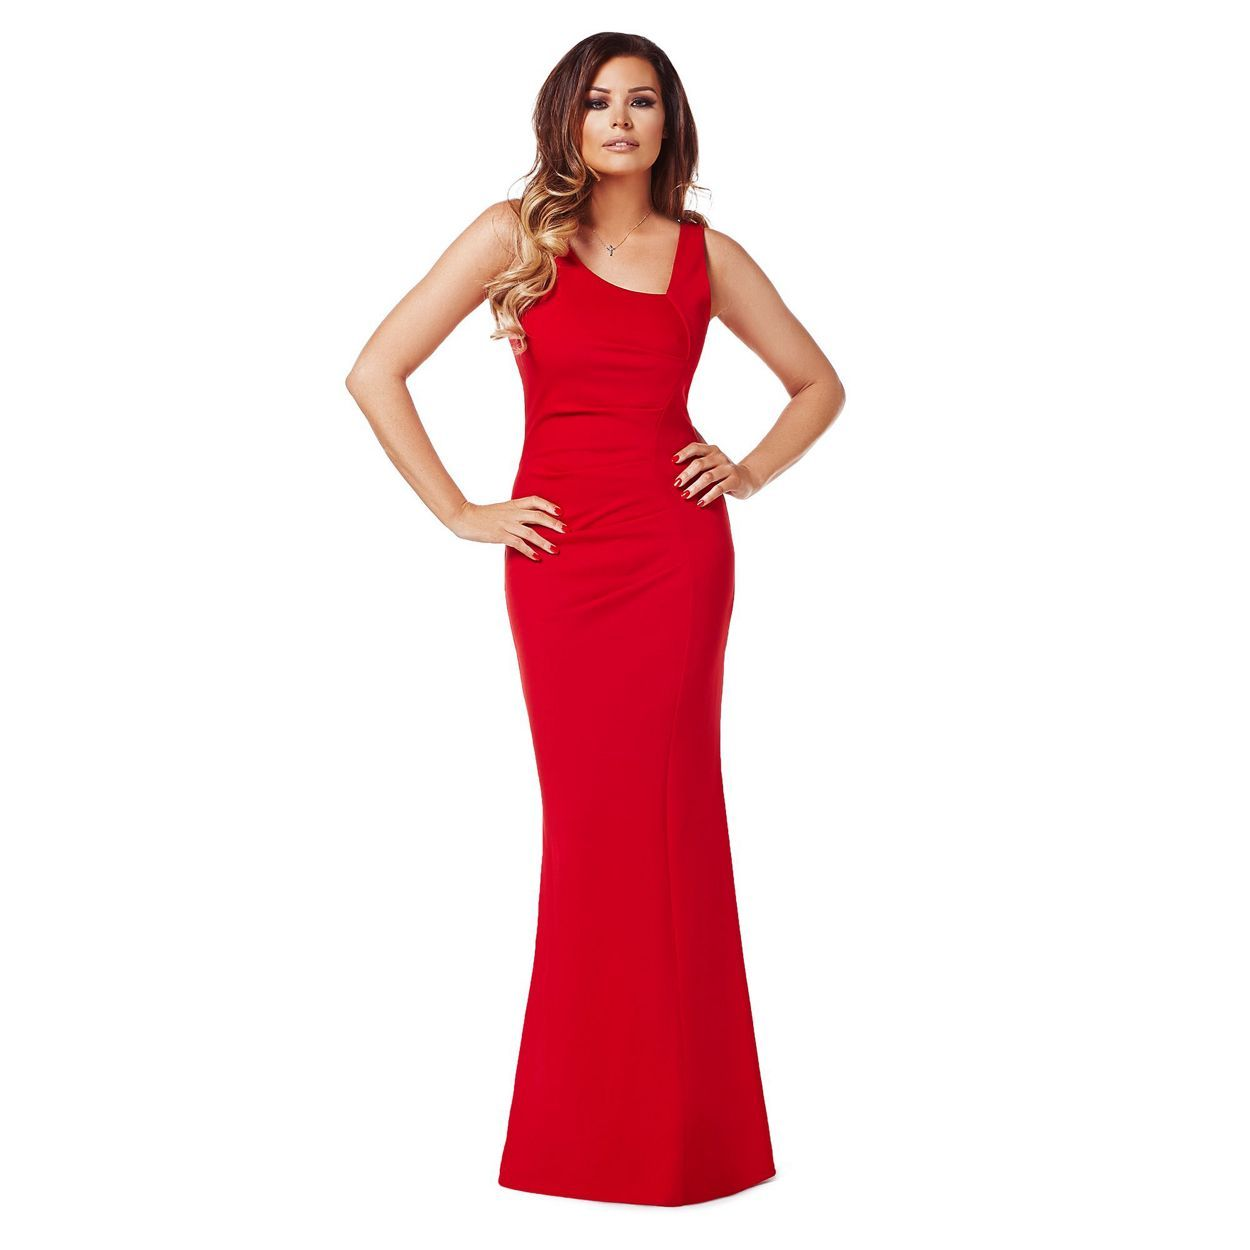 Jessica wright red veronica ruched maxi dress at debenhams jessica wright red veronica ruched maxi dress at debenhams ombrellifo Image collections